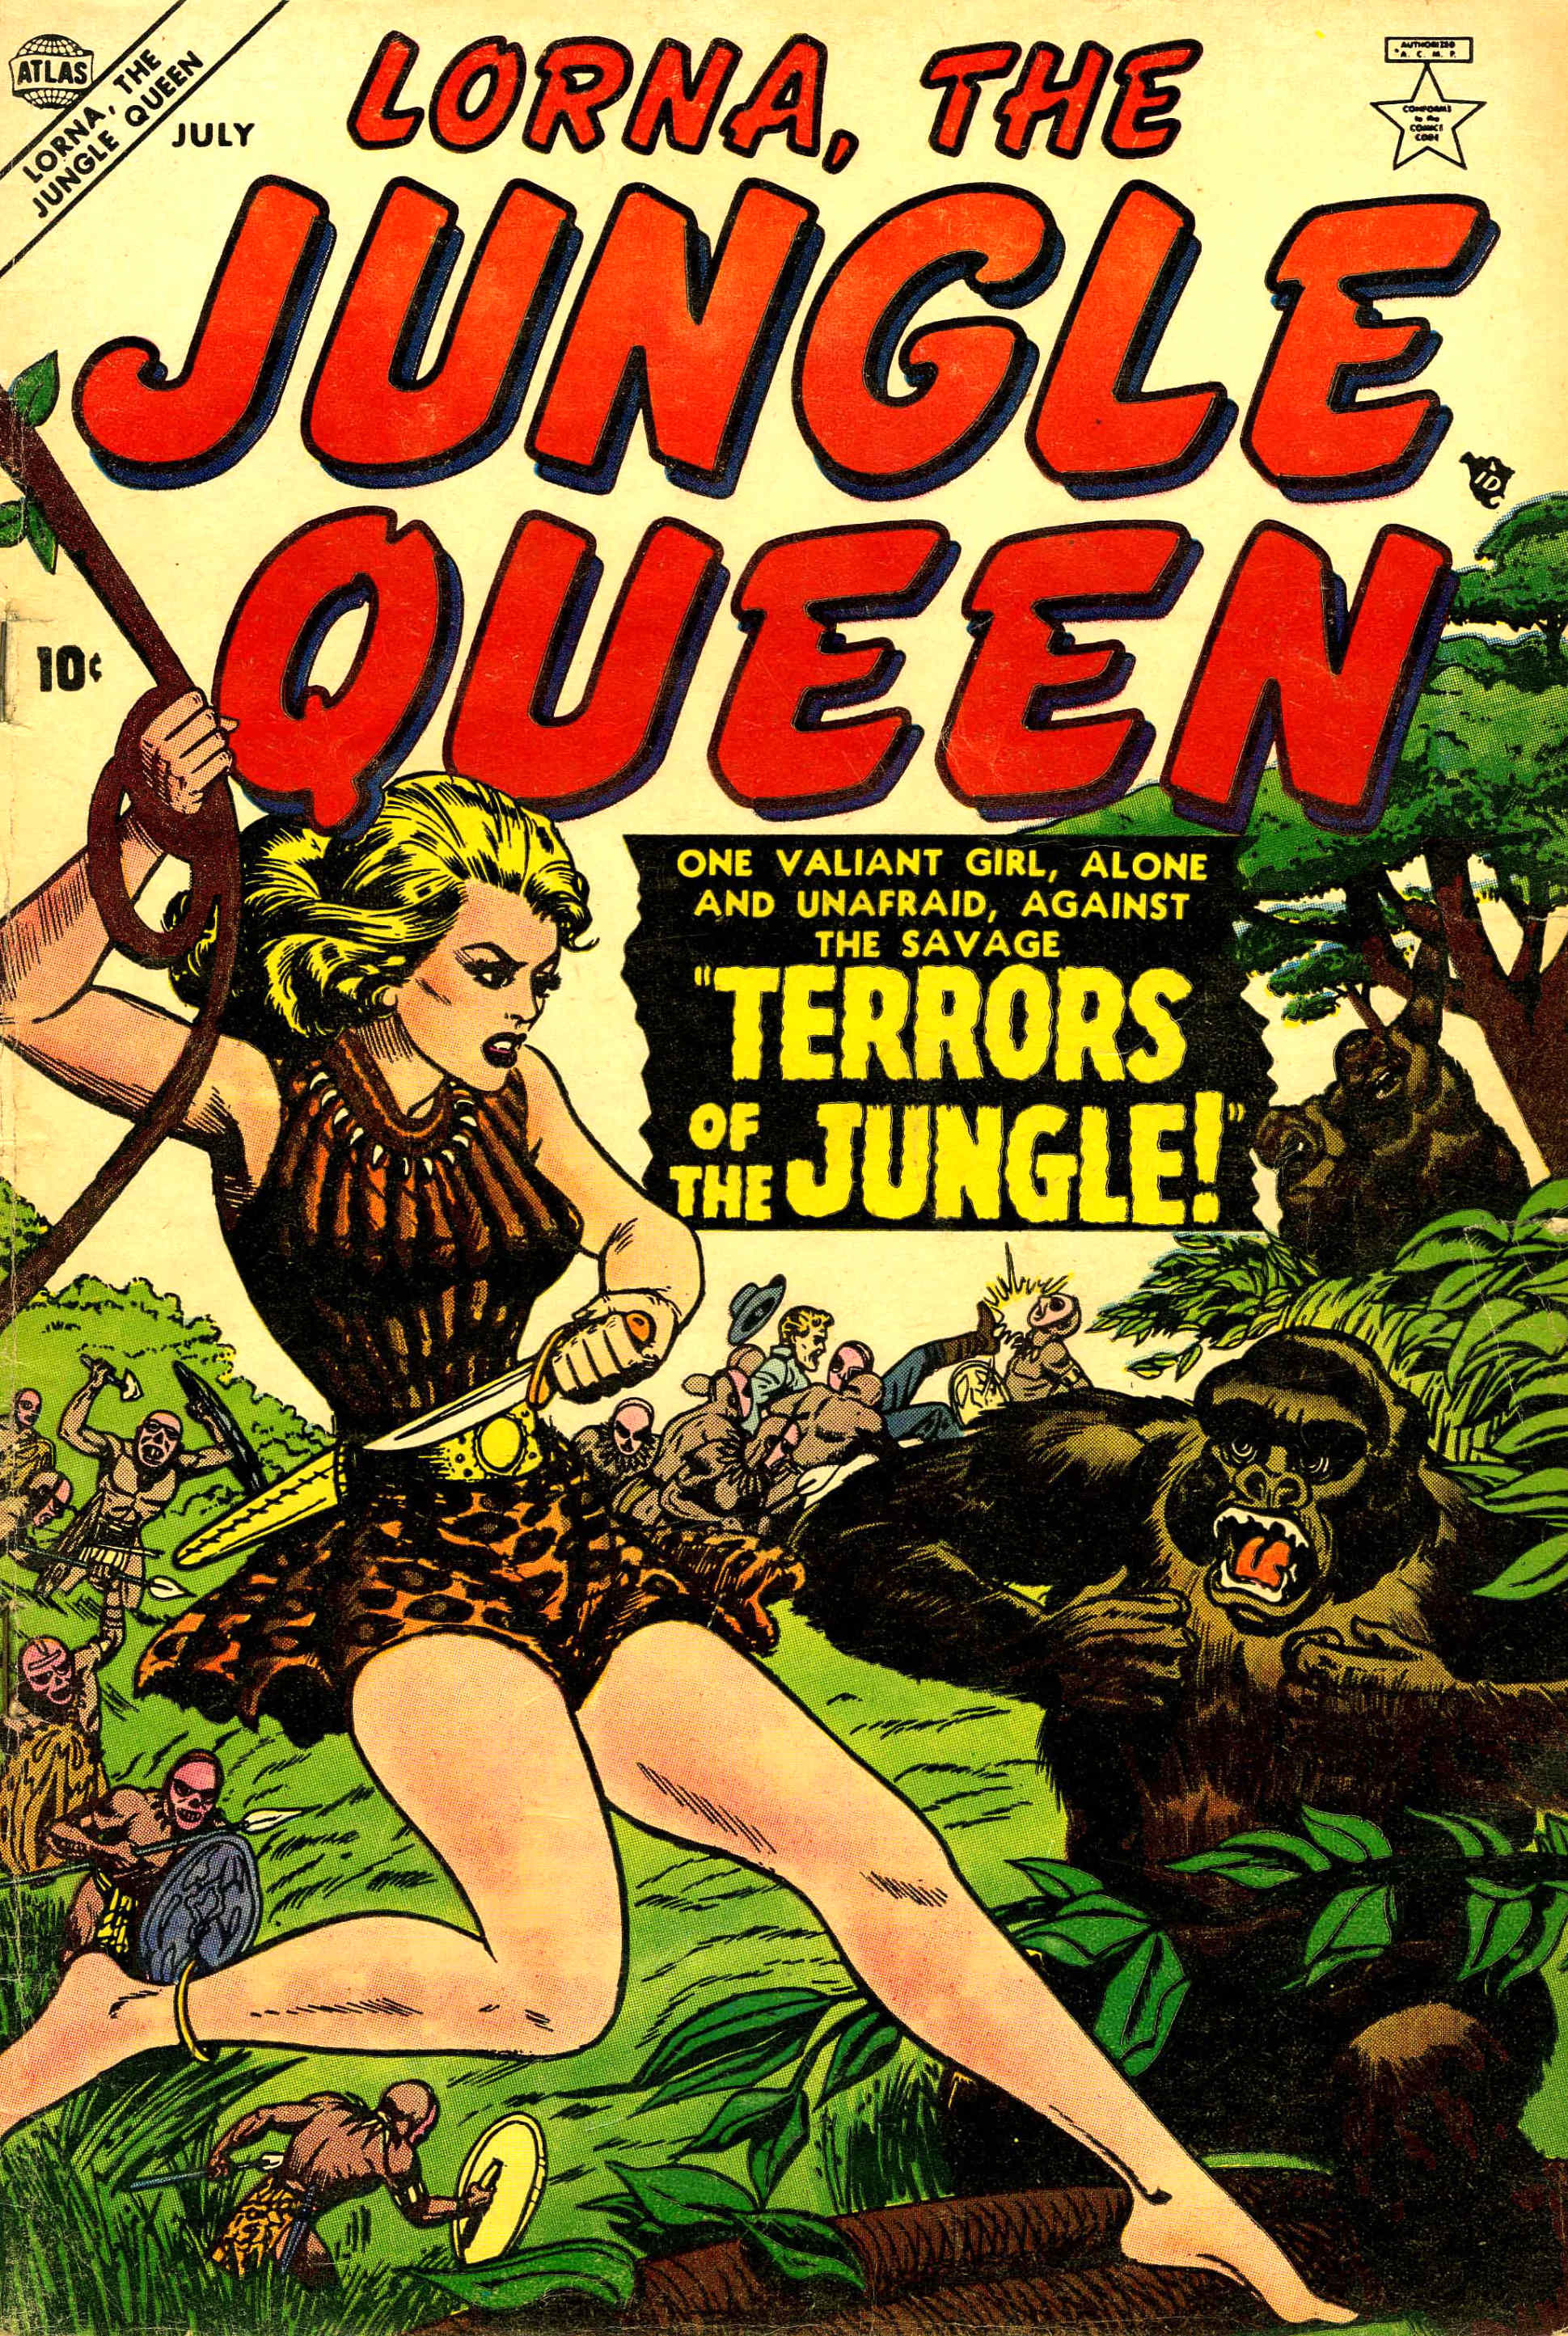 Read online Lorna, The Jungle Queen comic -  Issue #1 - 1